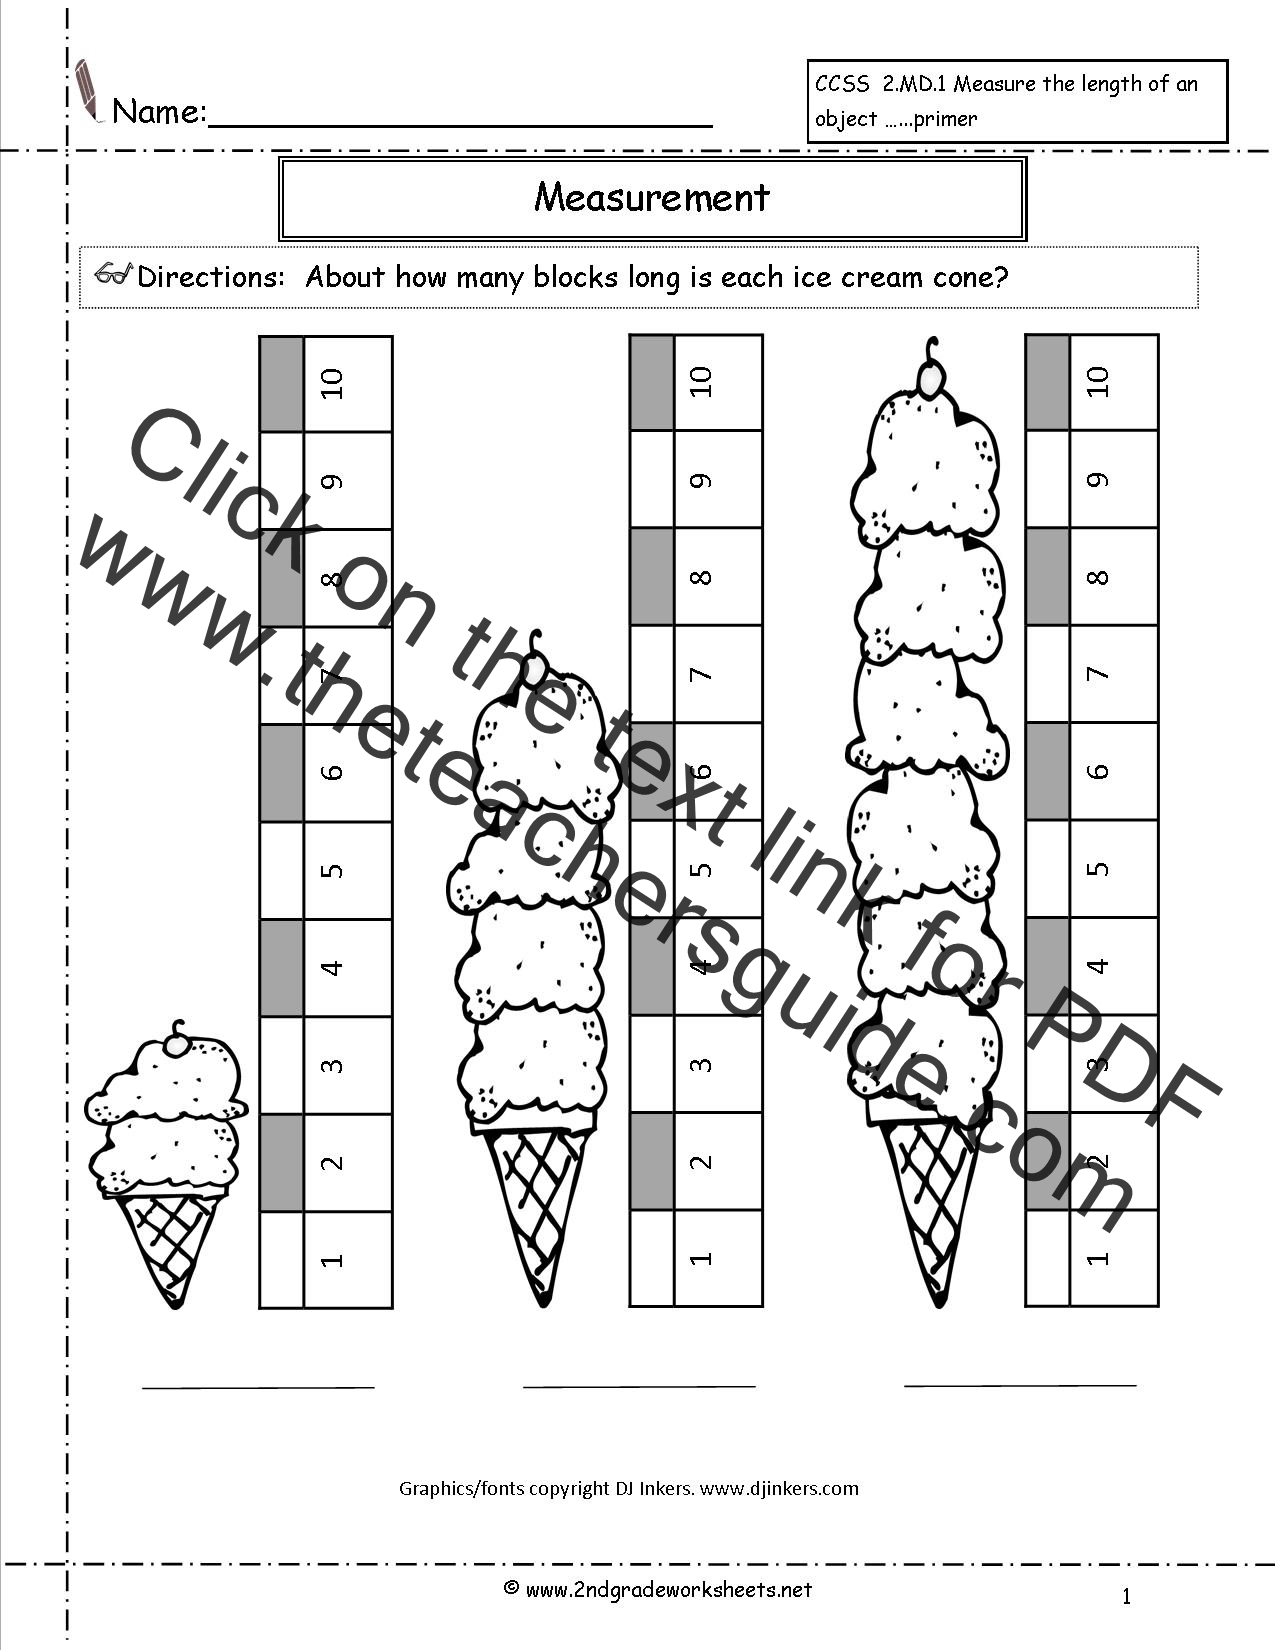 CCSS 2MD1 Worksheets Measuring Worksheets – Non Standard Measurement Worksheets